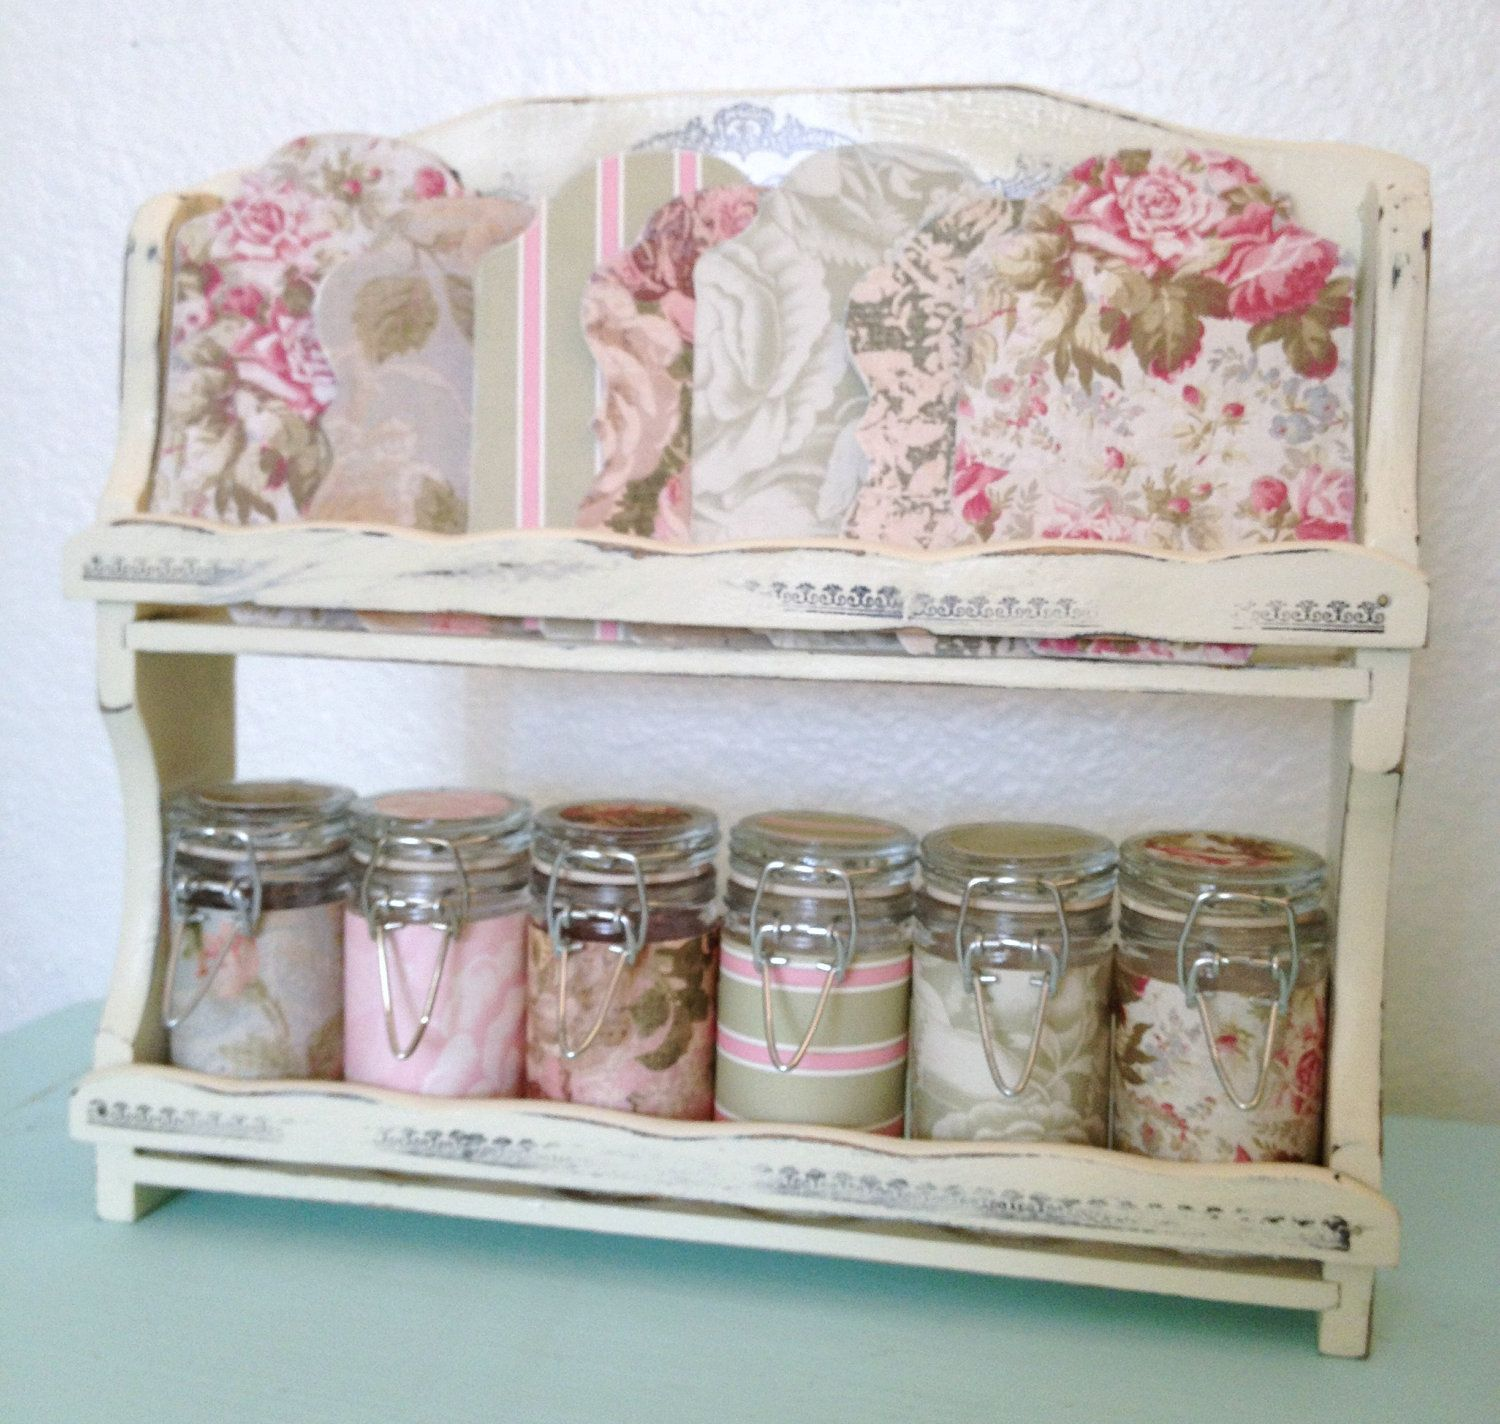 Shabby chic craft sewing room vintage storage by fifisfactory 30 00